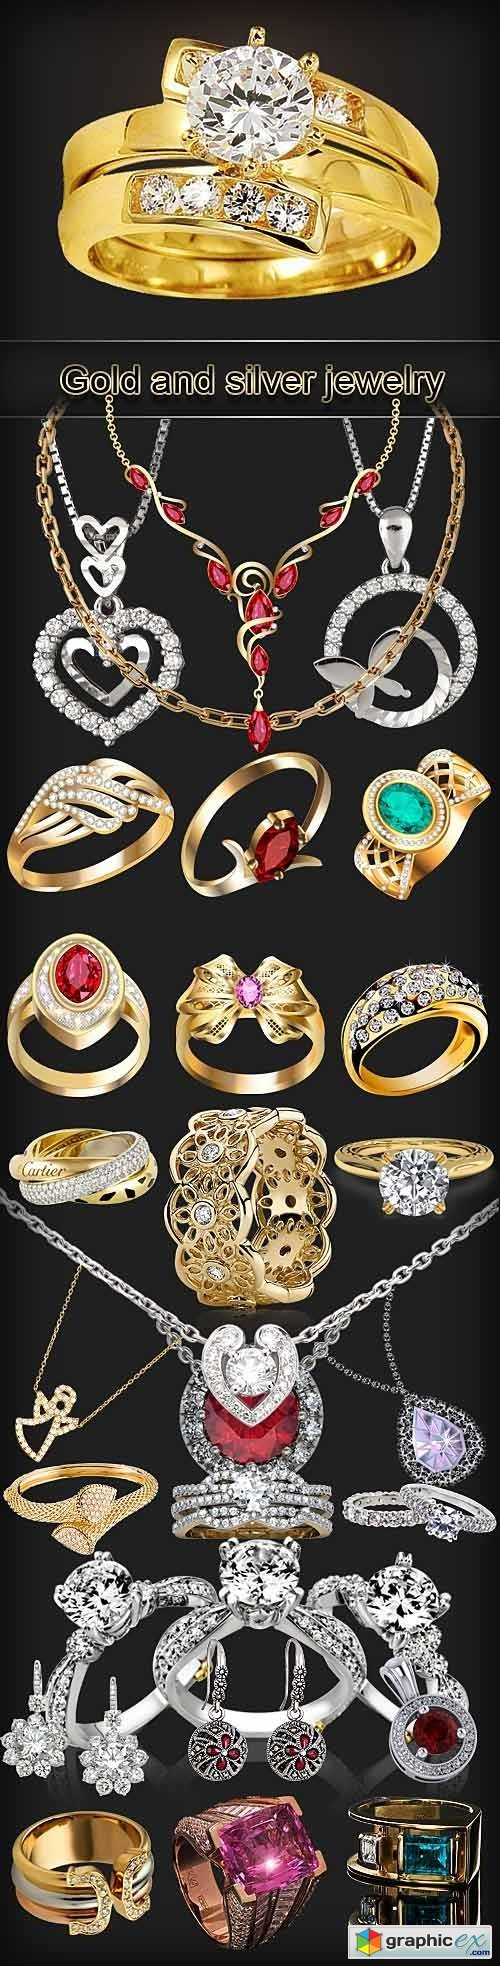 Various gold and silver jewelry PNG